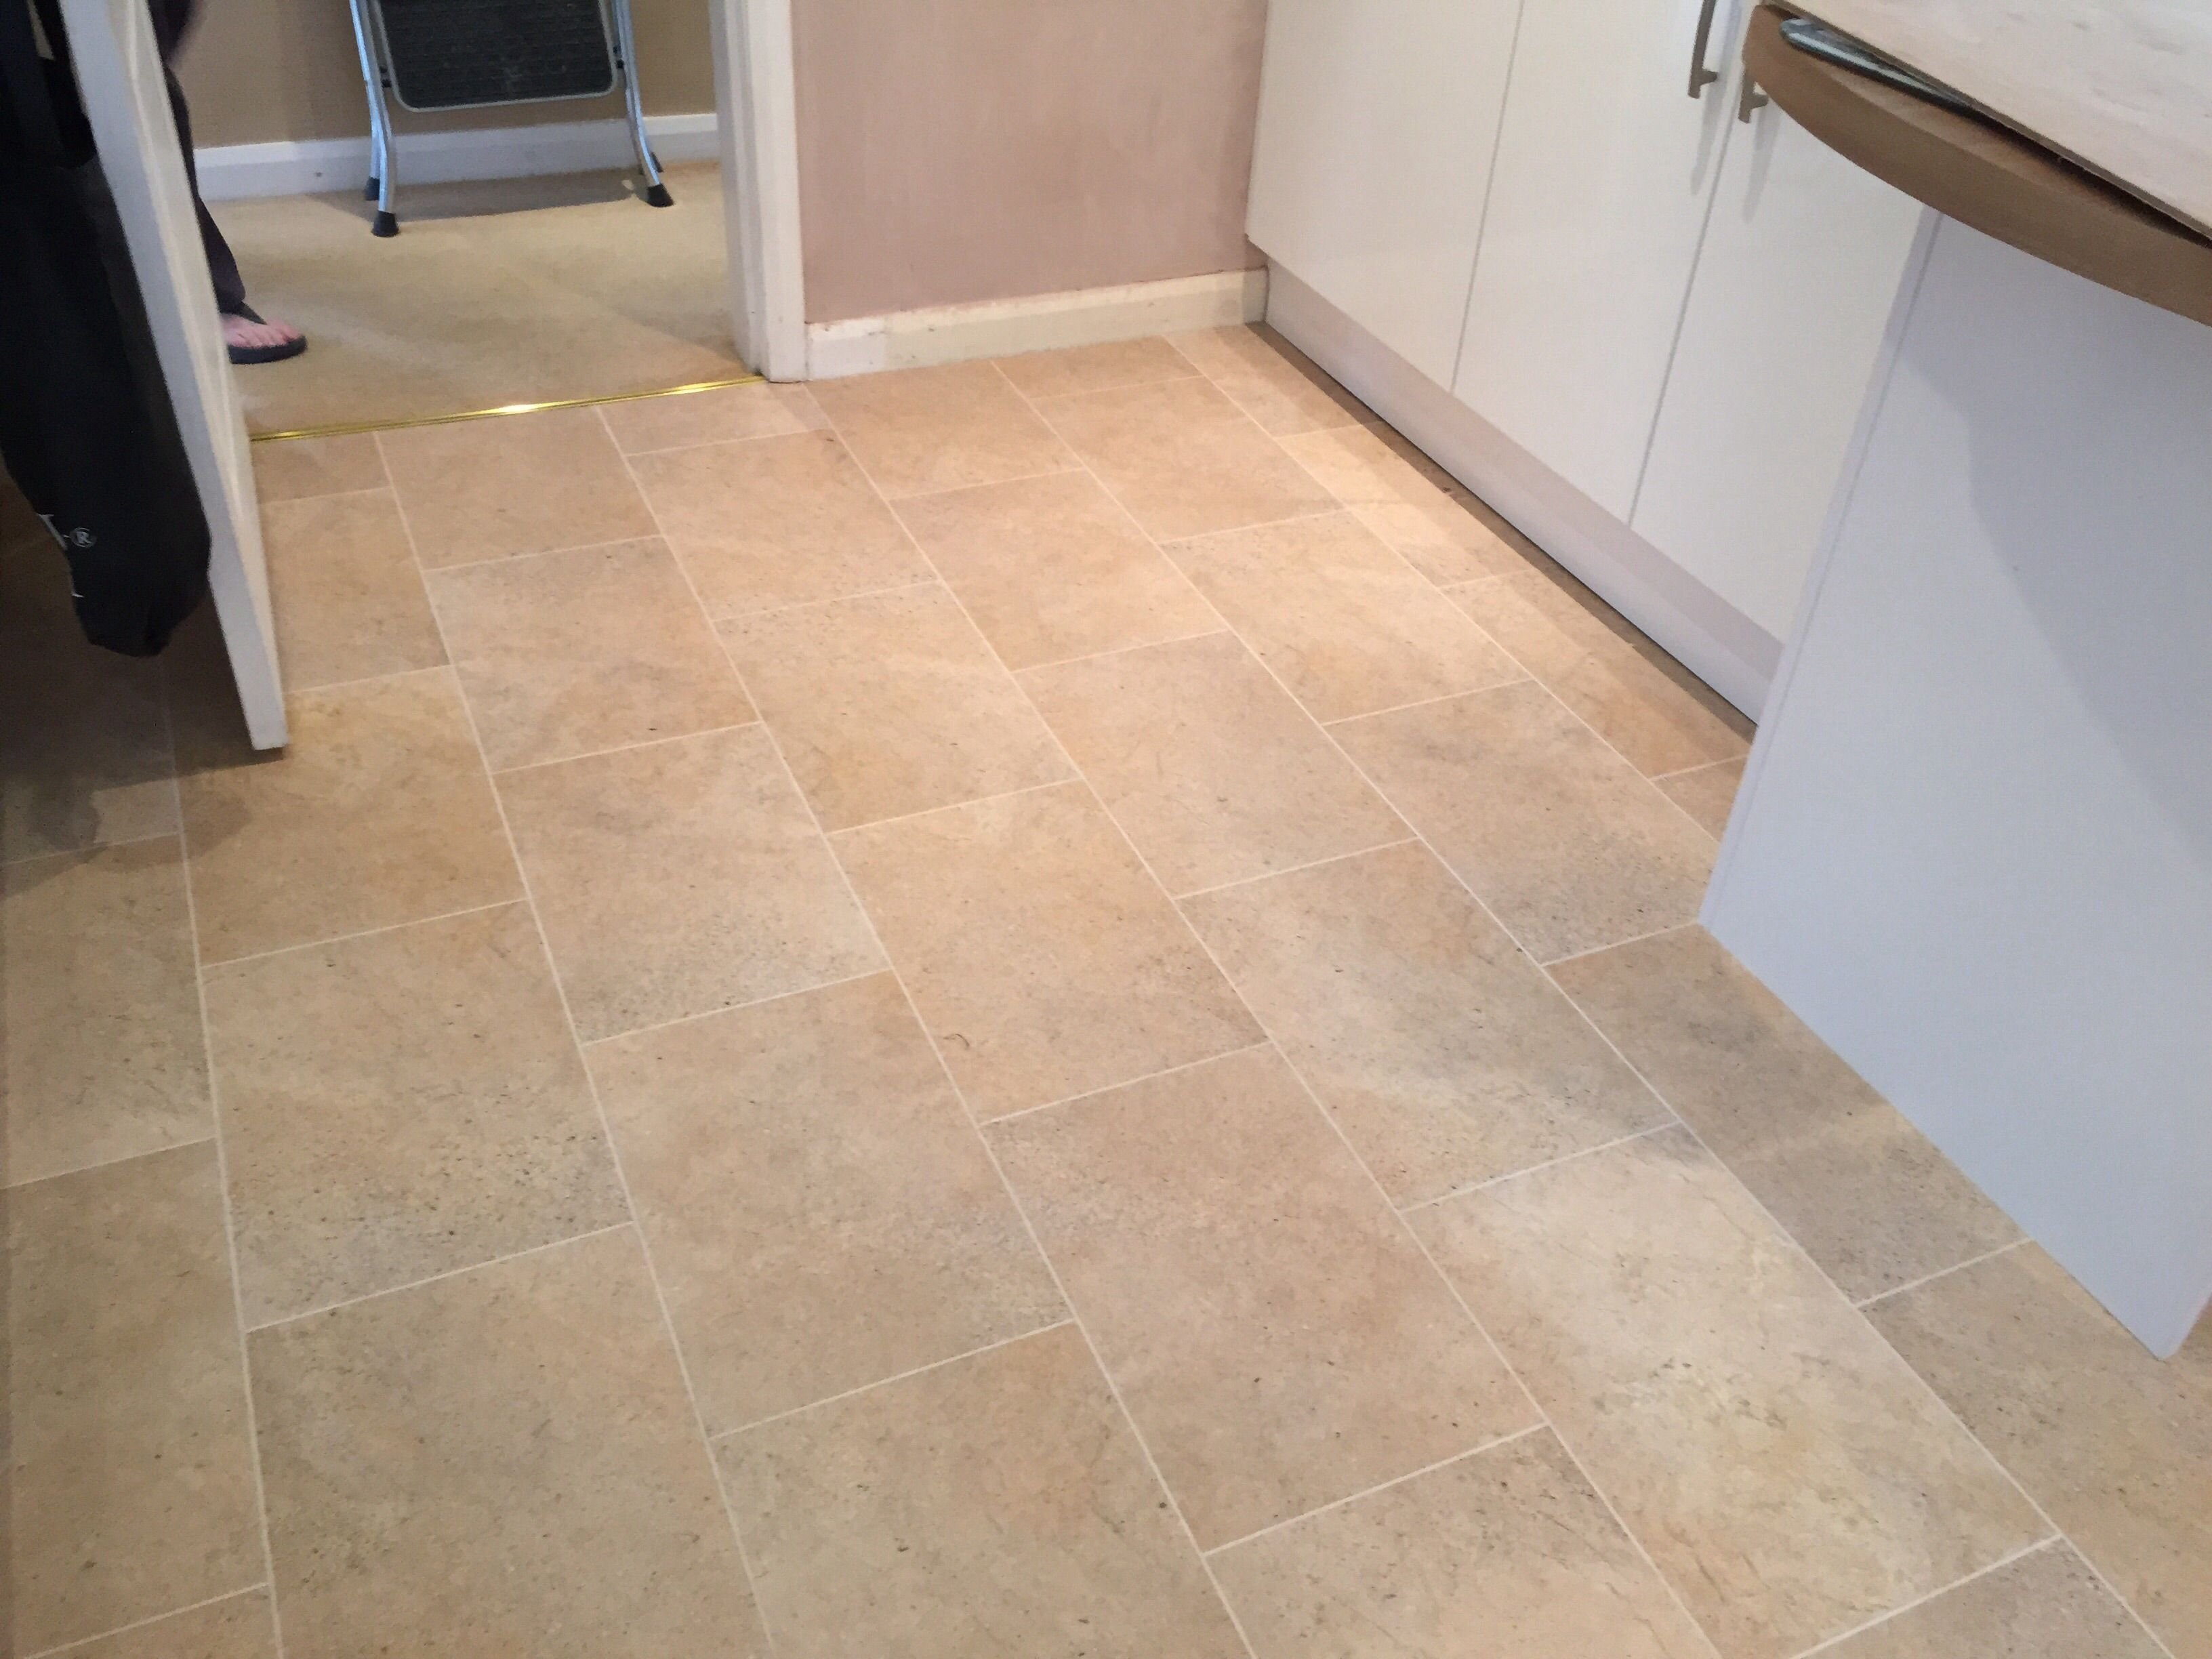 Karndean Knight Tile York Stone Supplied And Ed By Touchwood